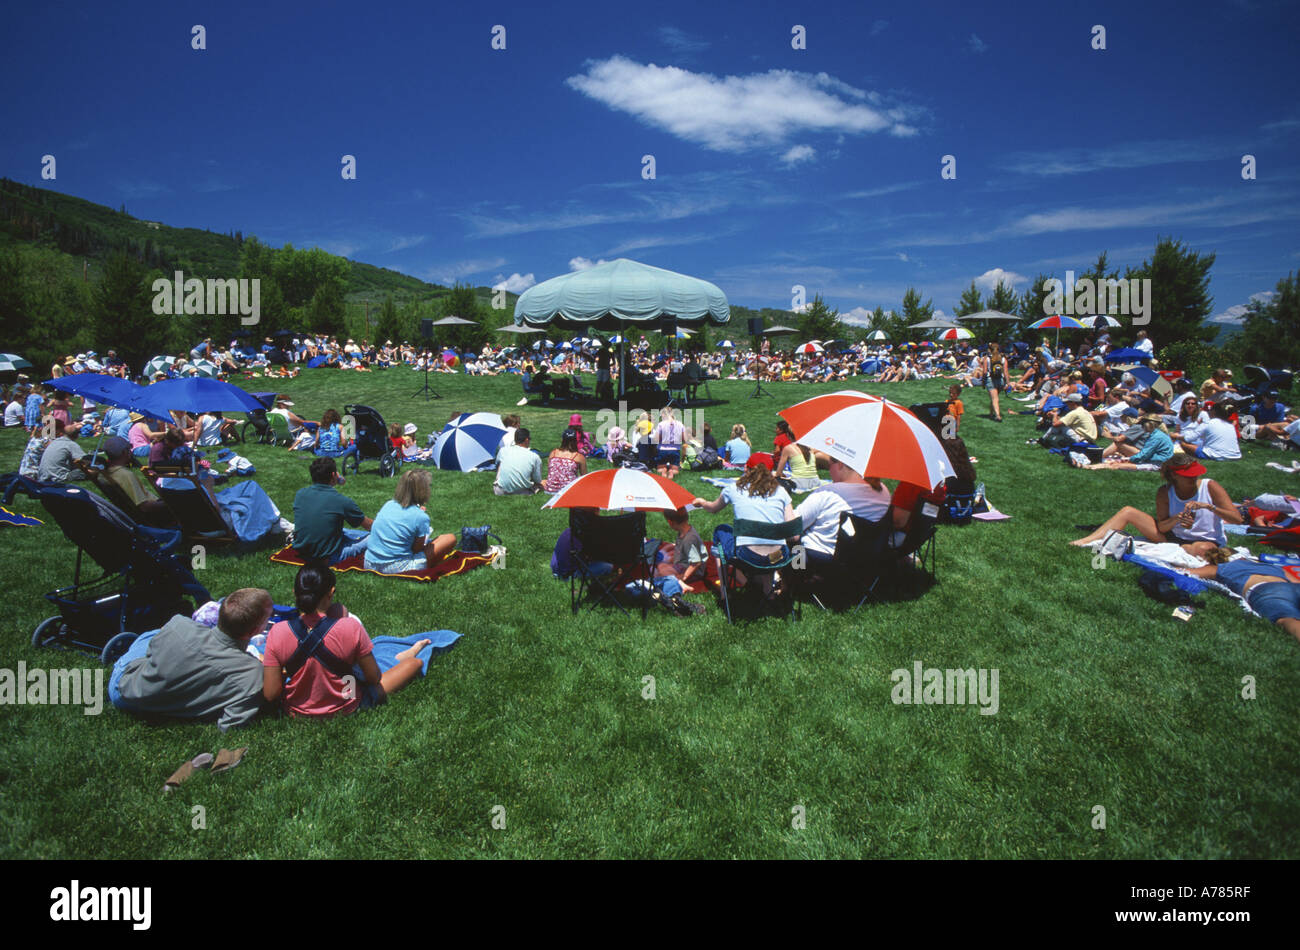 Crowd at outdoor concert Yampa river botanic park, Steamboat Springs, Colorado, USA. - Stock Image